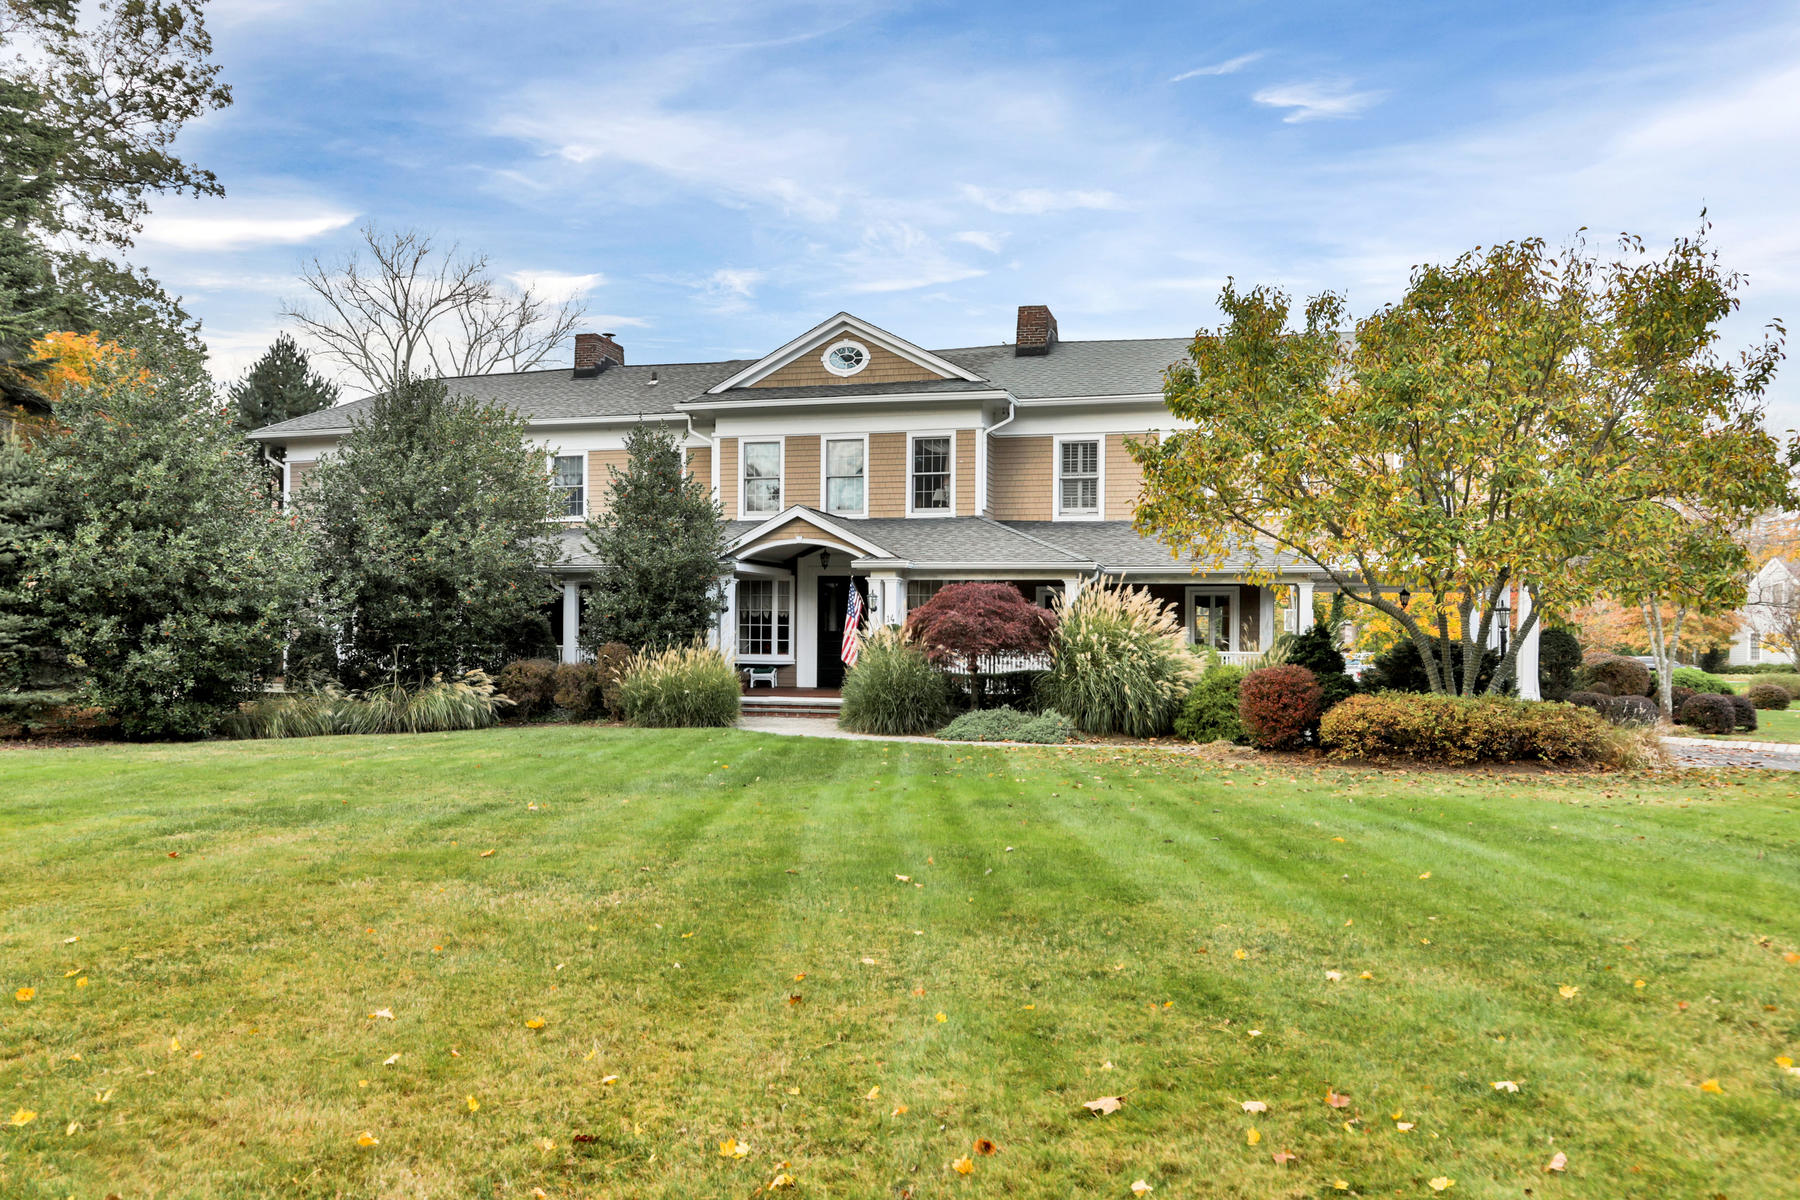 Single Family Homes for Sale at A Rare Gem In The Heart of Rumson 14 Hartshorne Lane Rumson, New Jersey 07760 United States